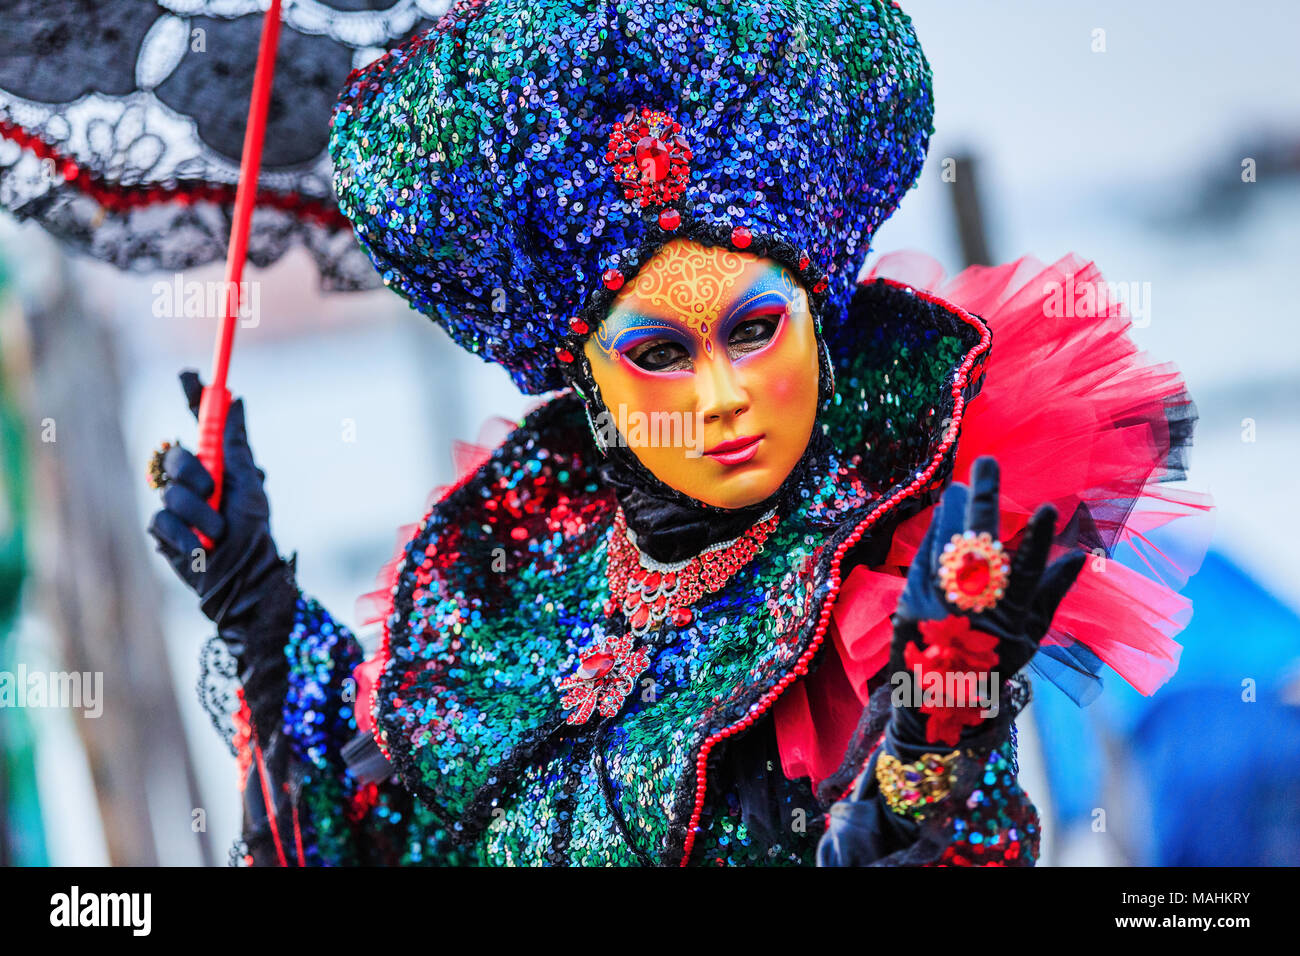 Venice, Italy. Carnival of Venice, beautiful mask at St. Mark's Square. - Stock Image